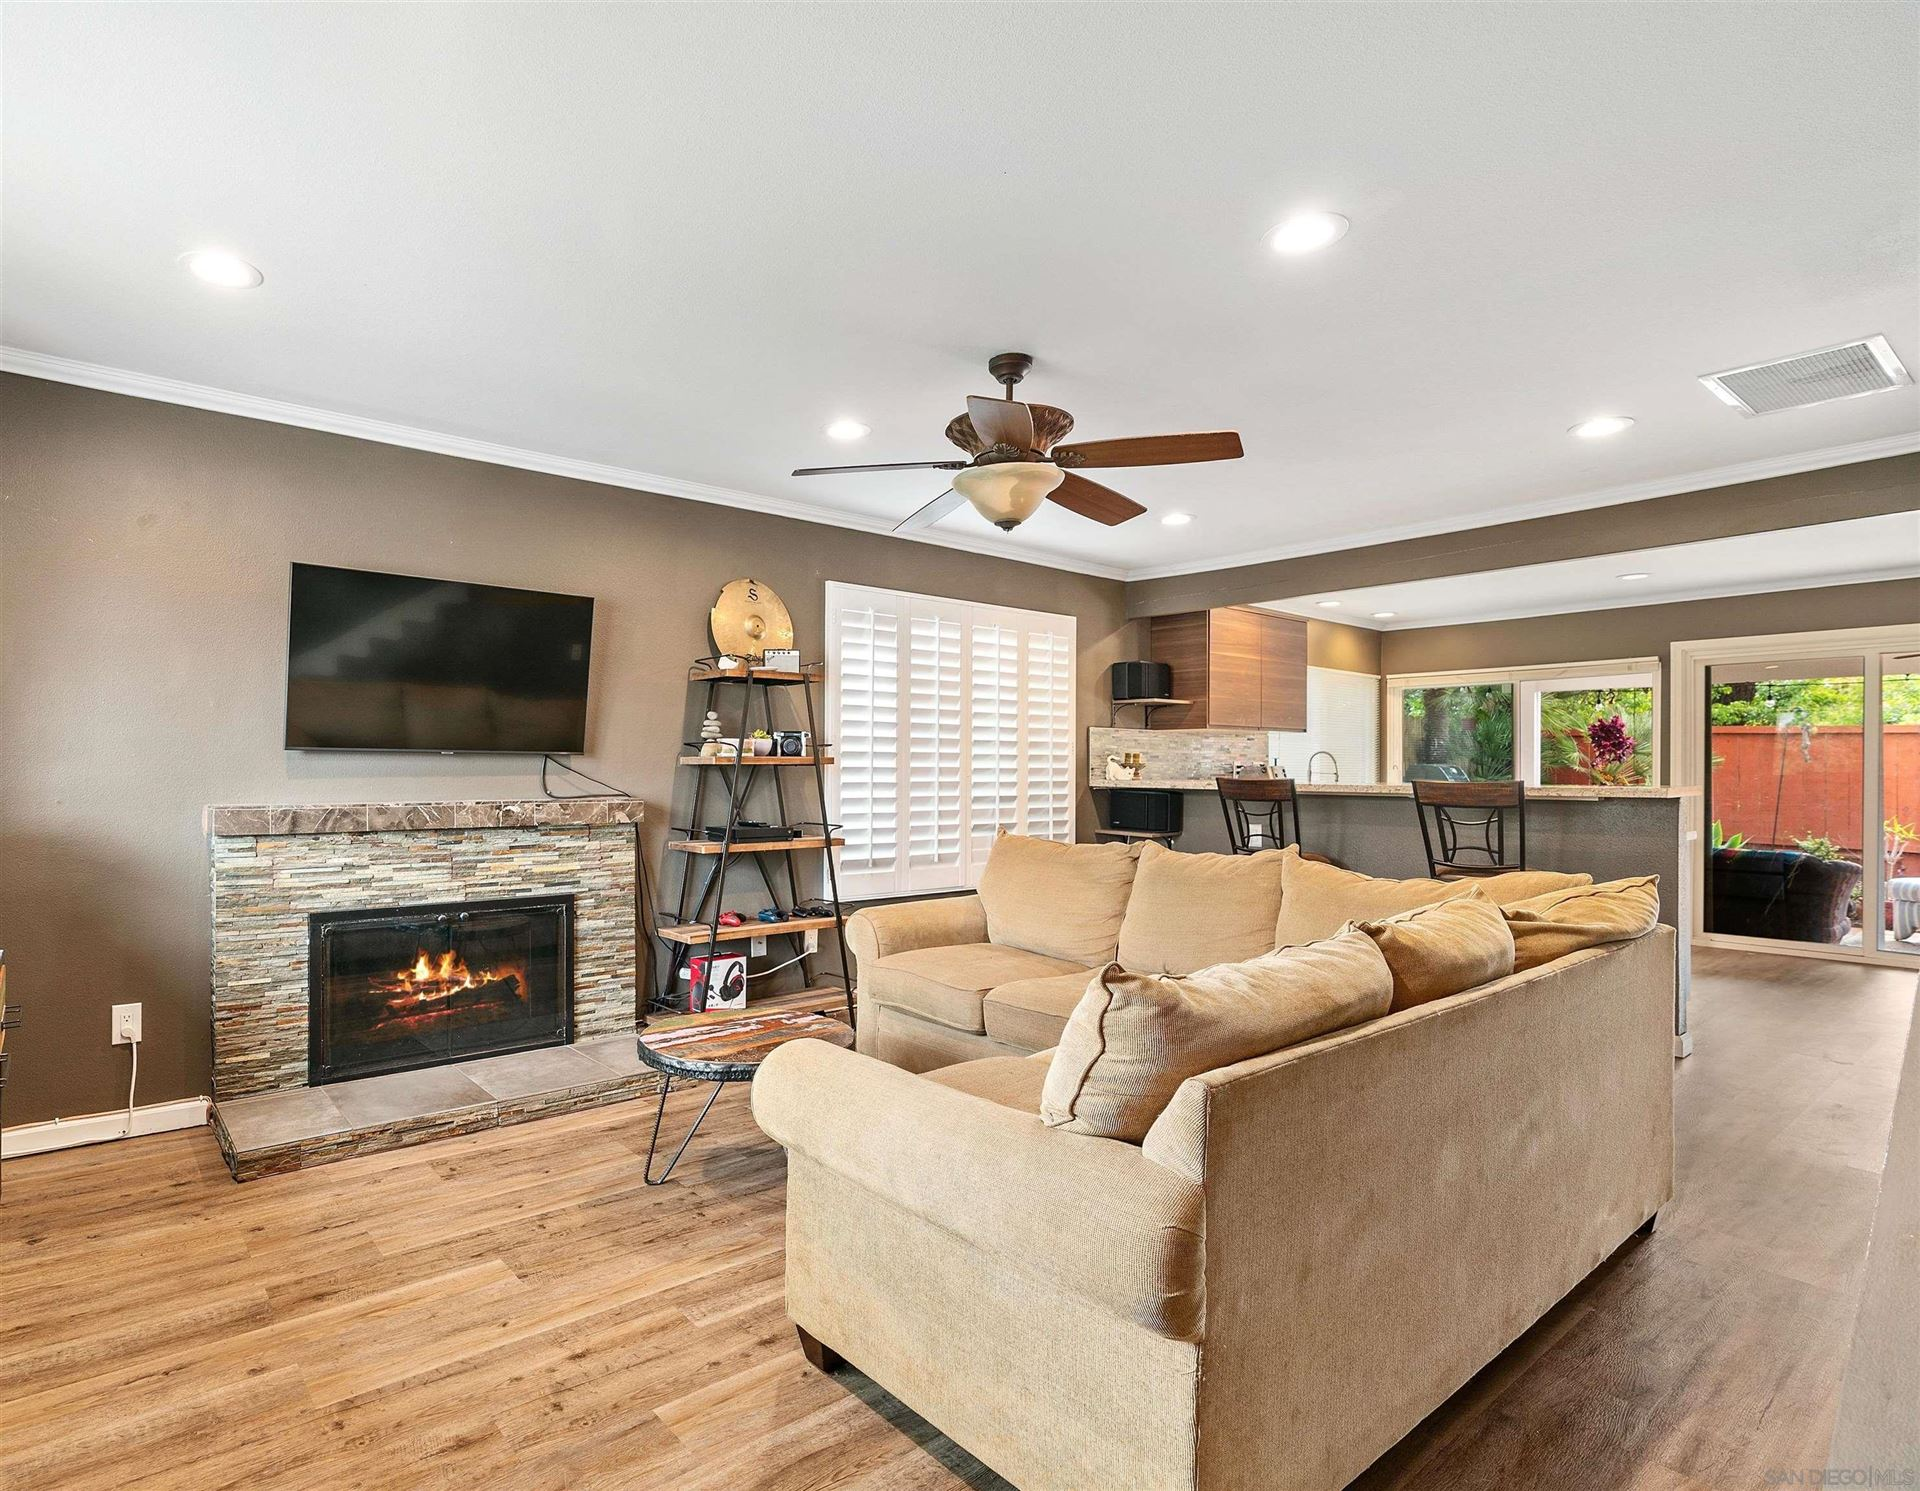 Photo of 921 Woodlake Dr, Cardiff by the Sea, CA 92007 (MLS # 210028690)